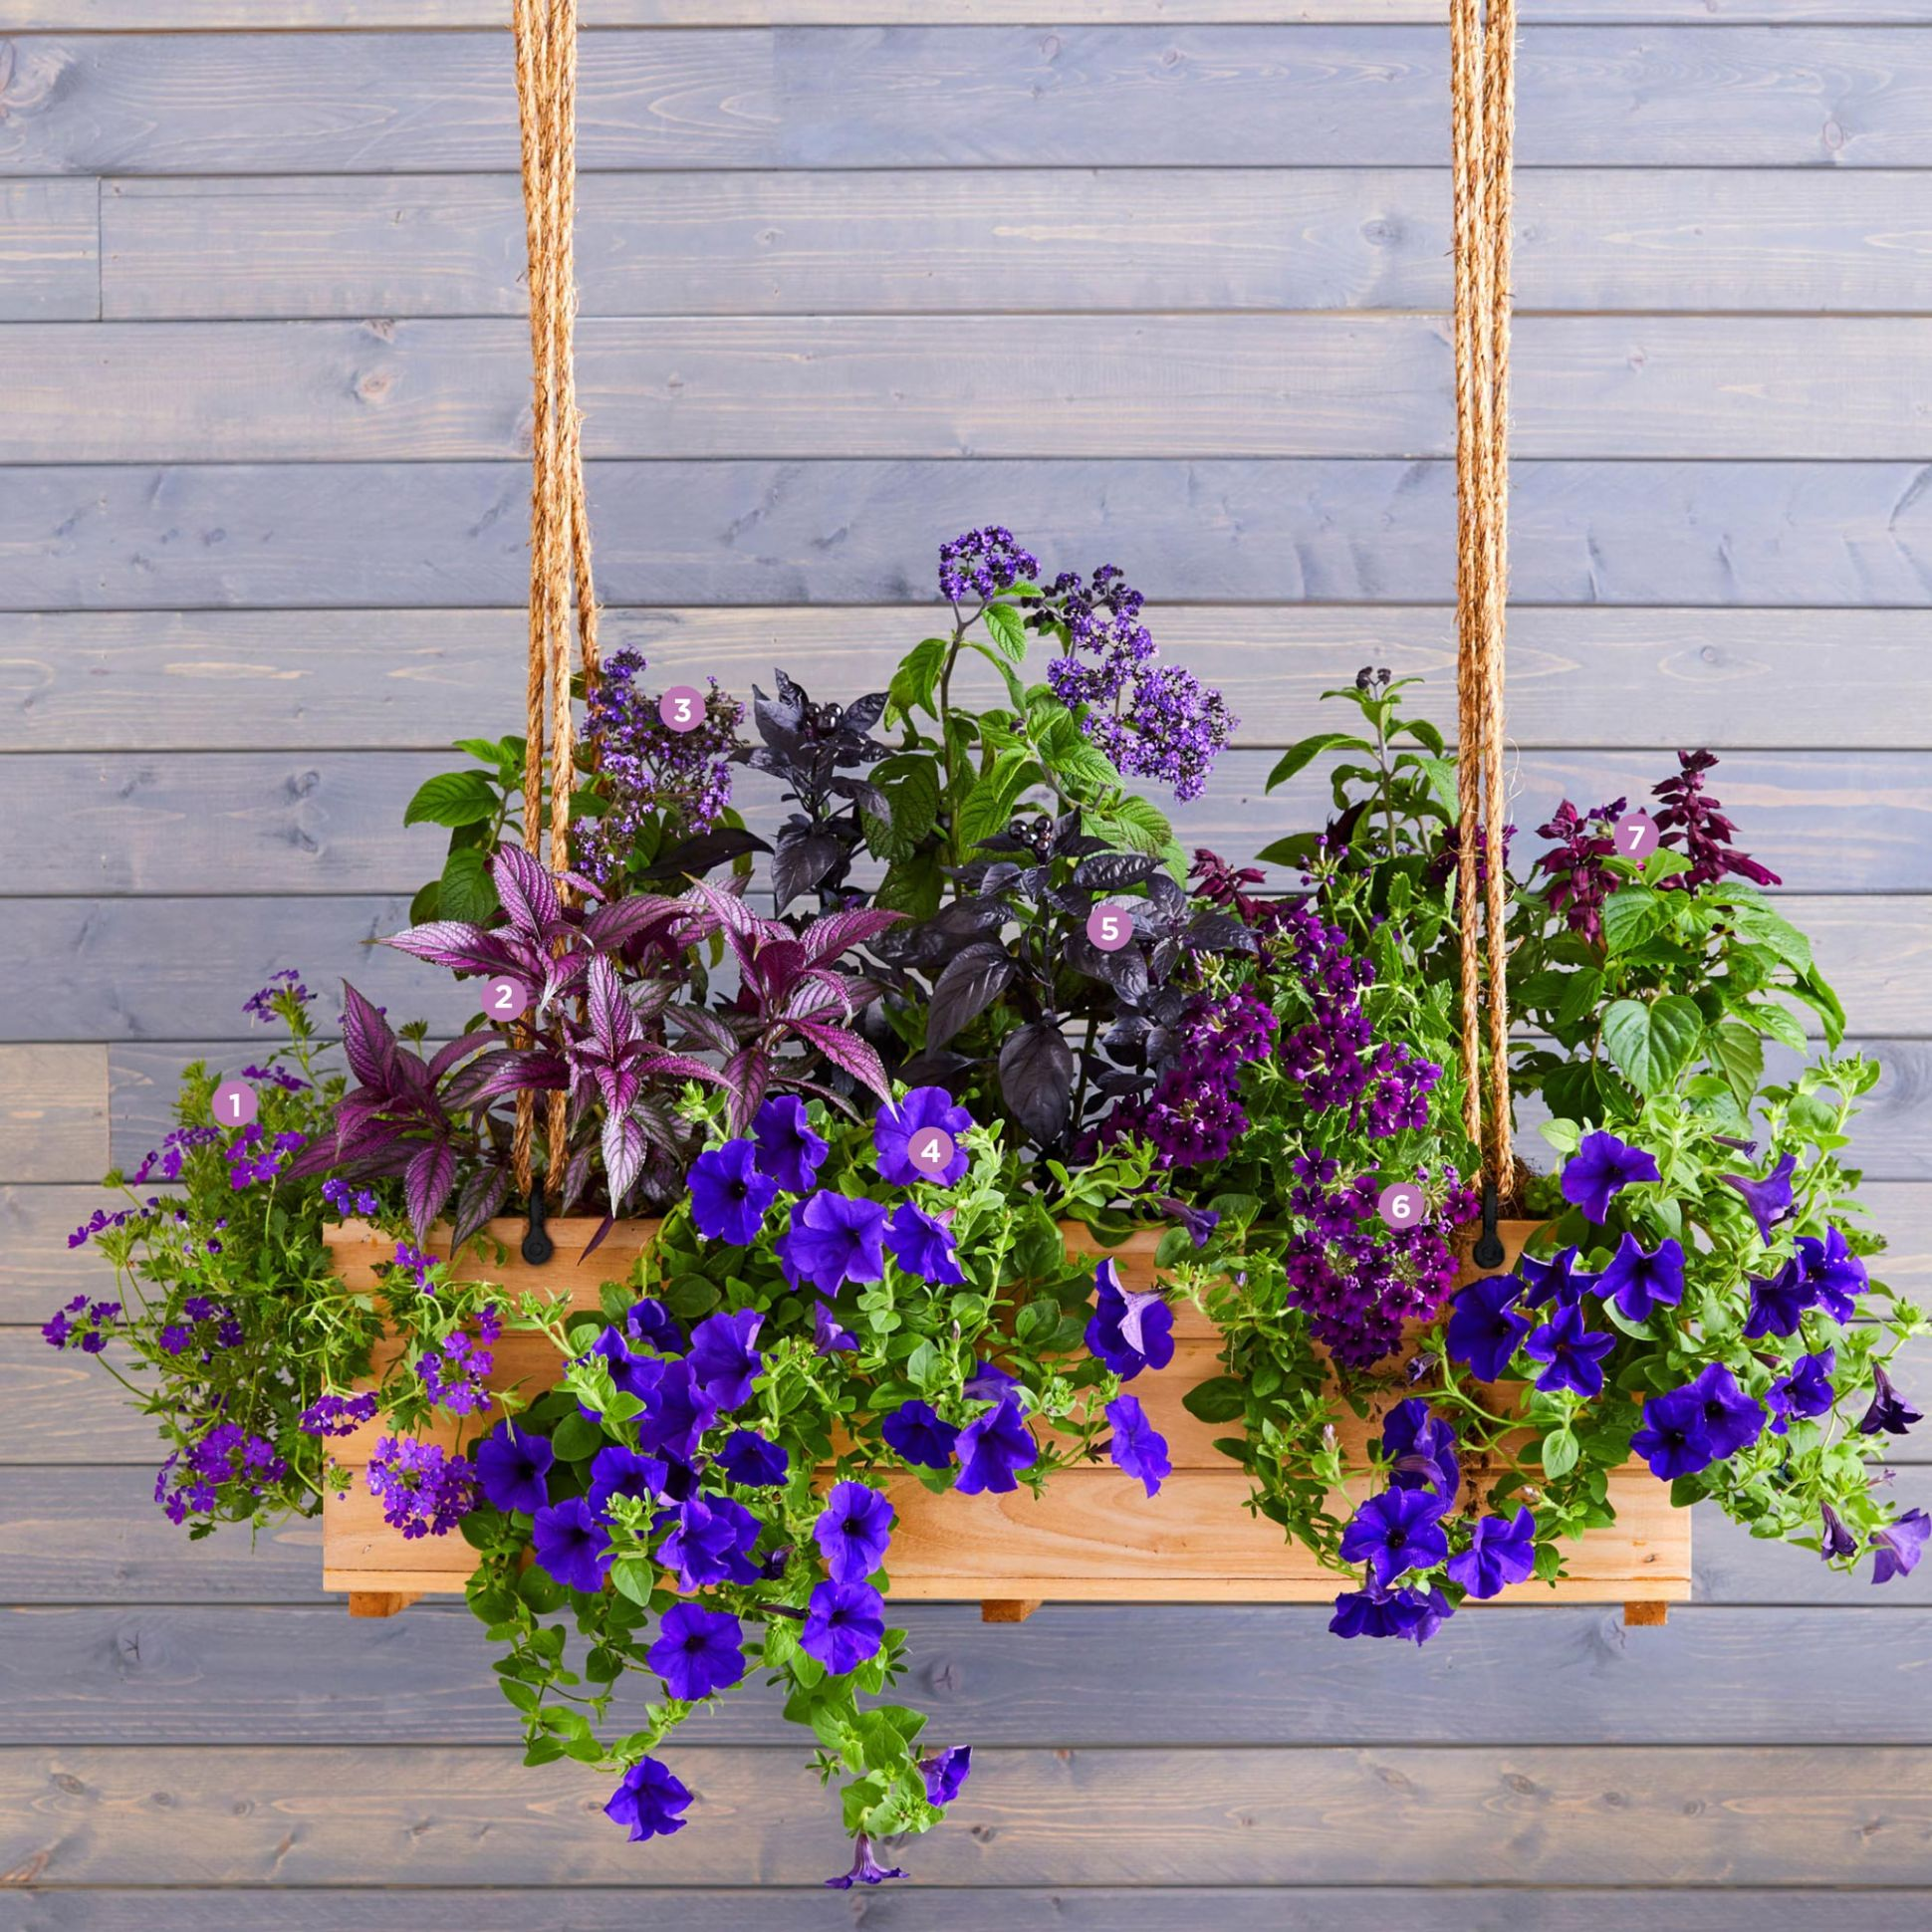 12 Bright and Beautiful Window Box Planters | Midwest Living - window box ideas for summer